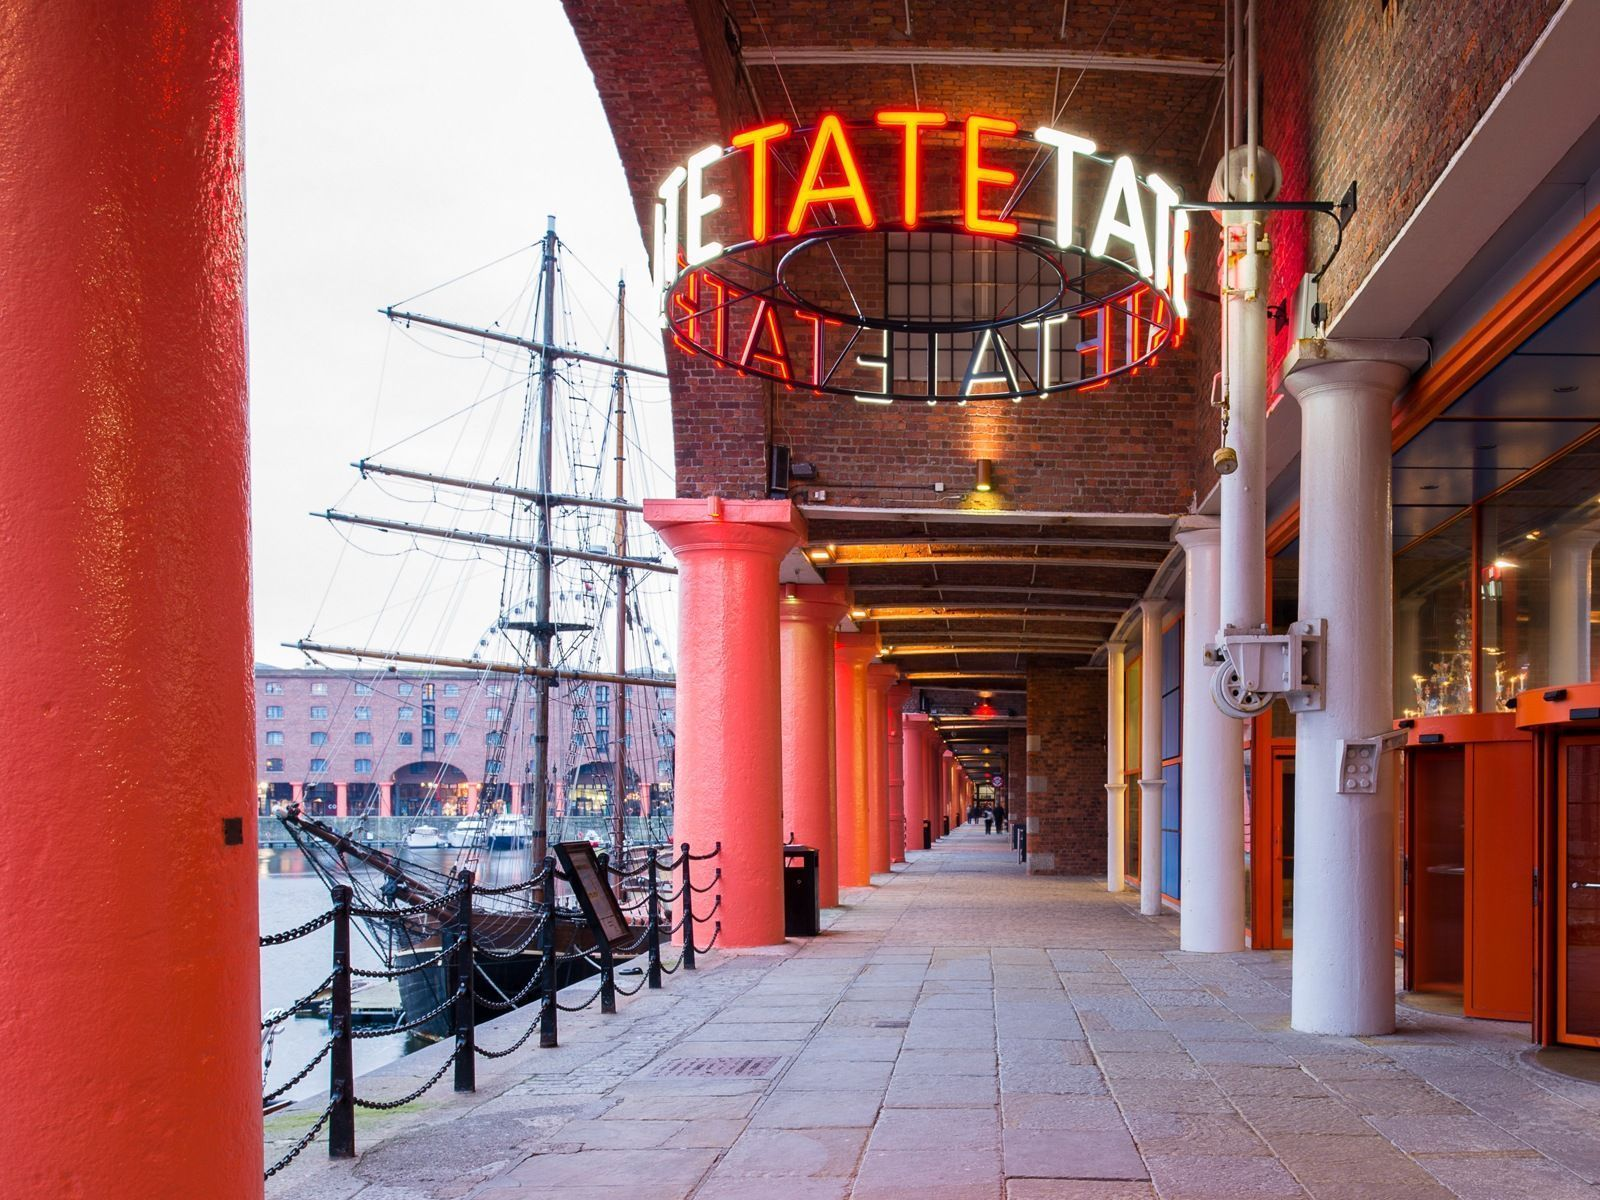 open call for a socially engaged commission at tate